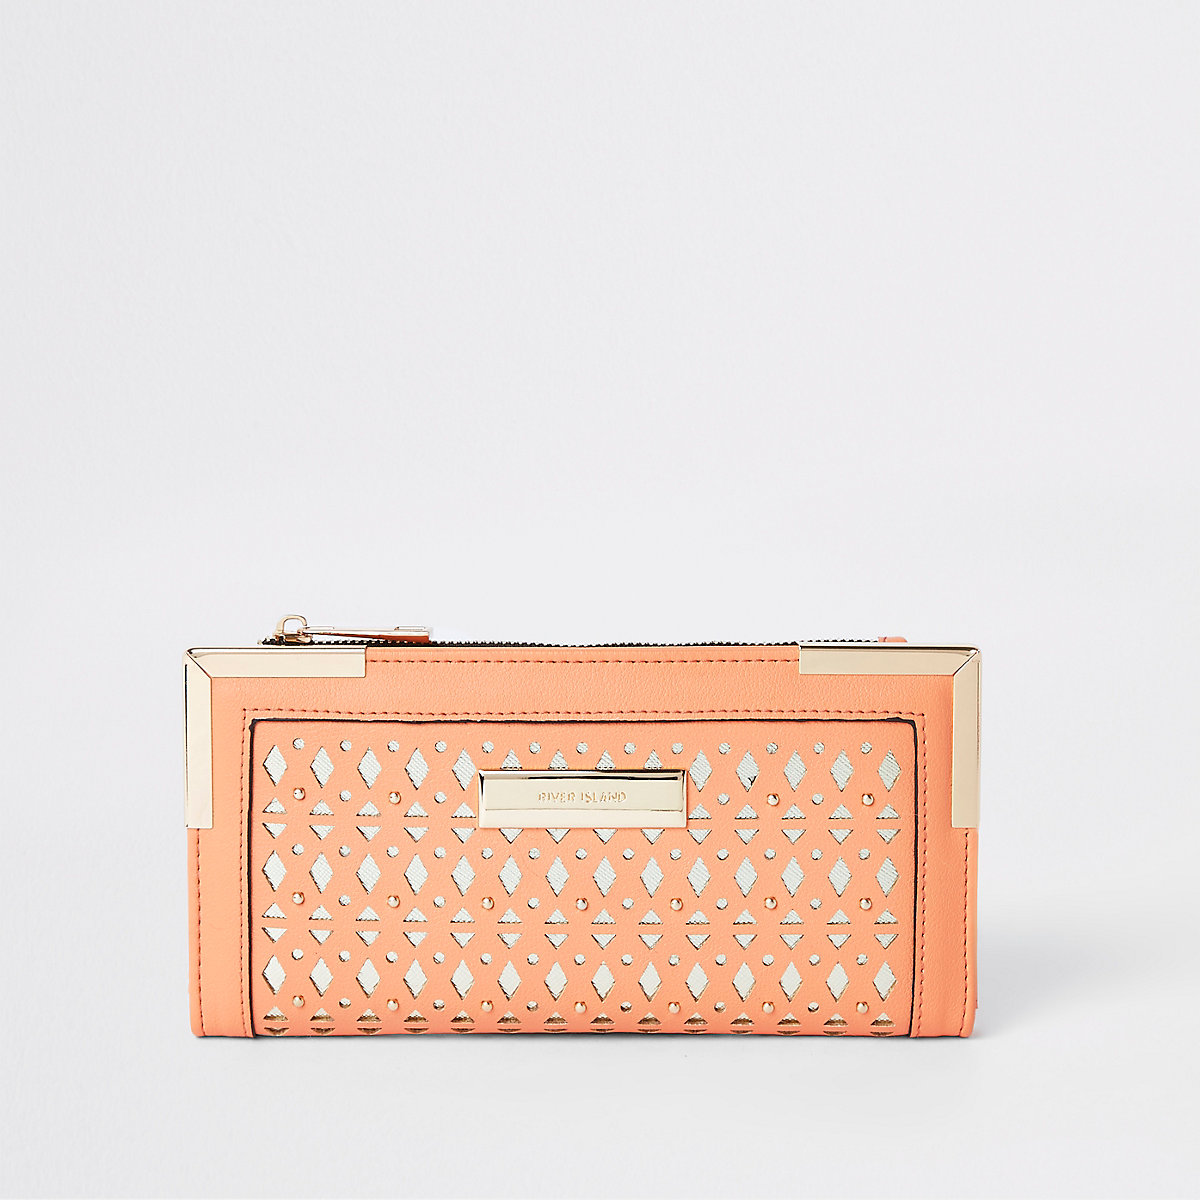 Coral laser cut foldout purse